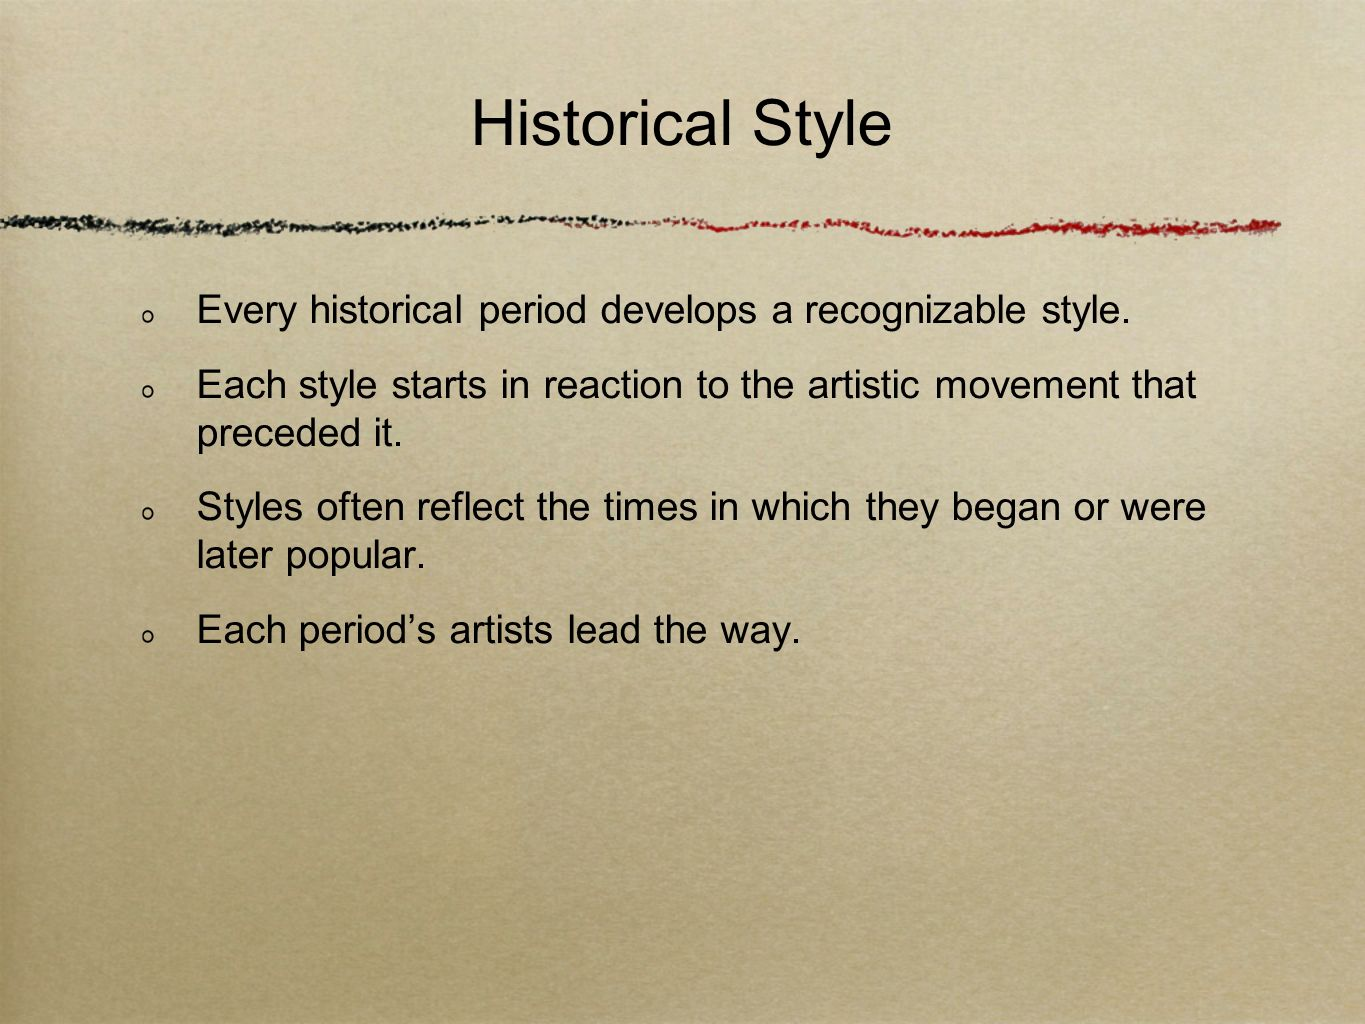 Historical Style Every historical period develops a recognizable style. Each style starts in reaction to the artistic movement that preceded it.